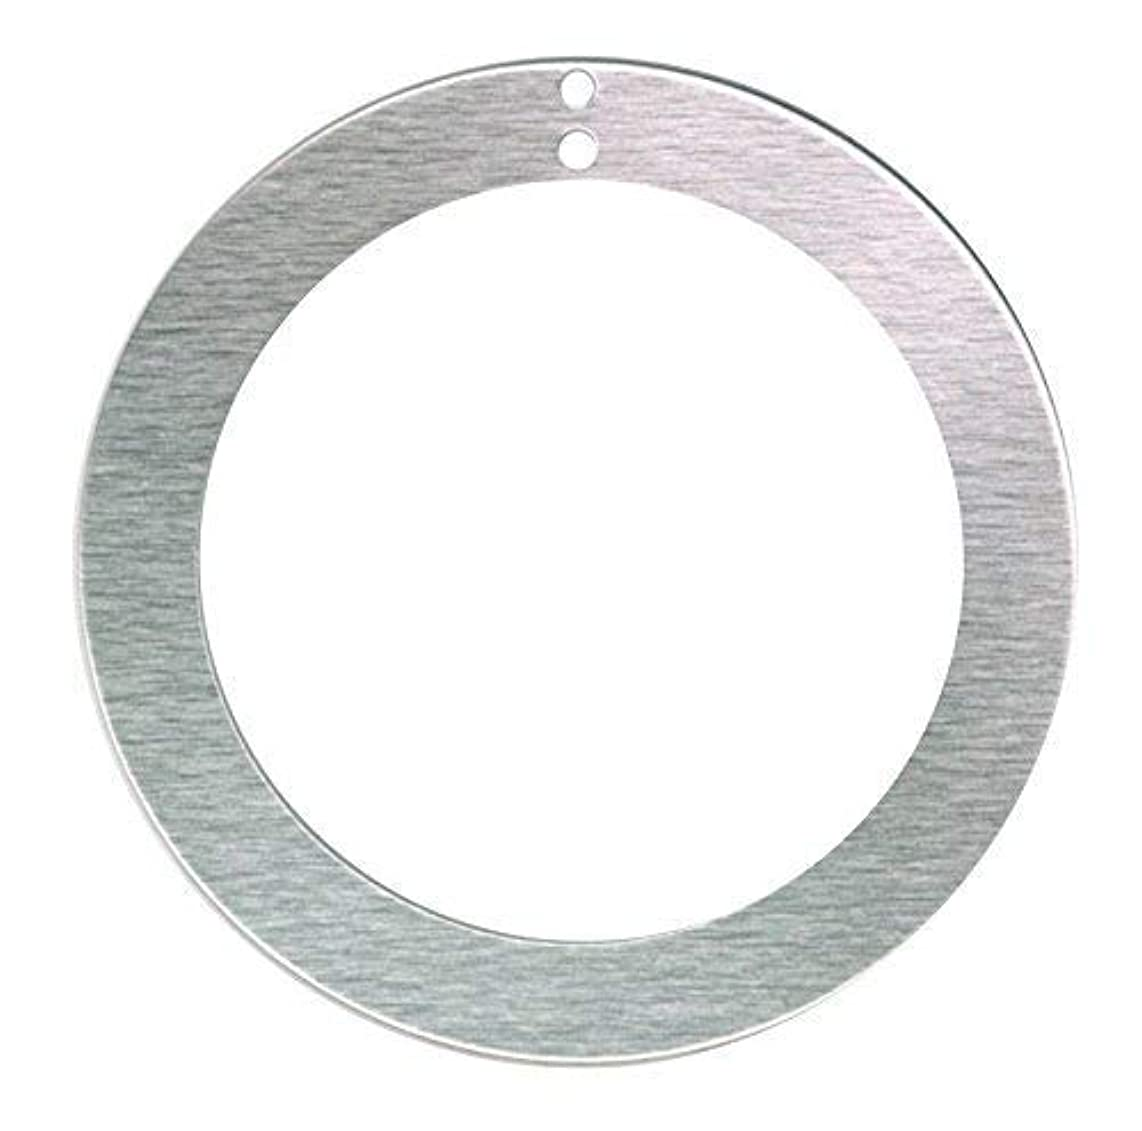 RMP Stamping Blanks, 2 Inch Round Washer with 1-1/2 Inch Center and Two Top Holes, Aluminum 0.063 Inch (14 Ga.) - 50 Pack